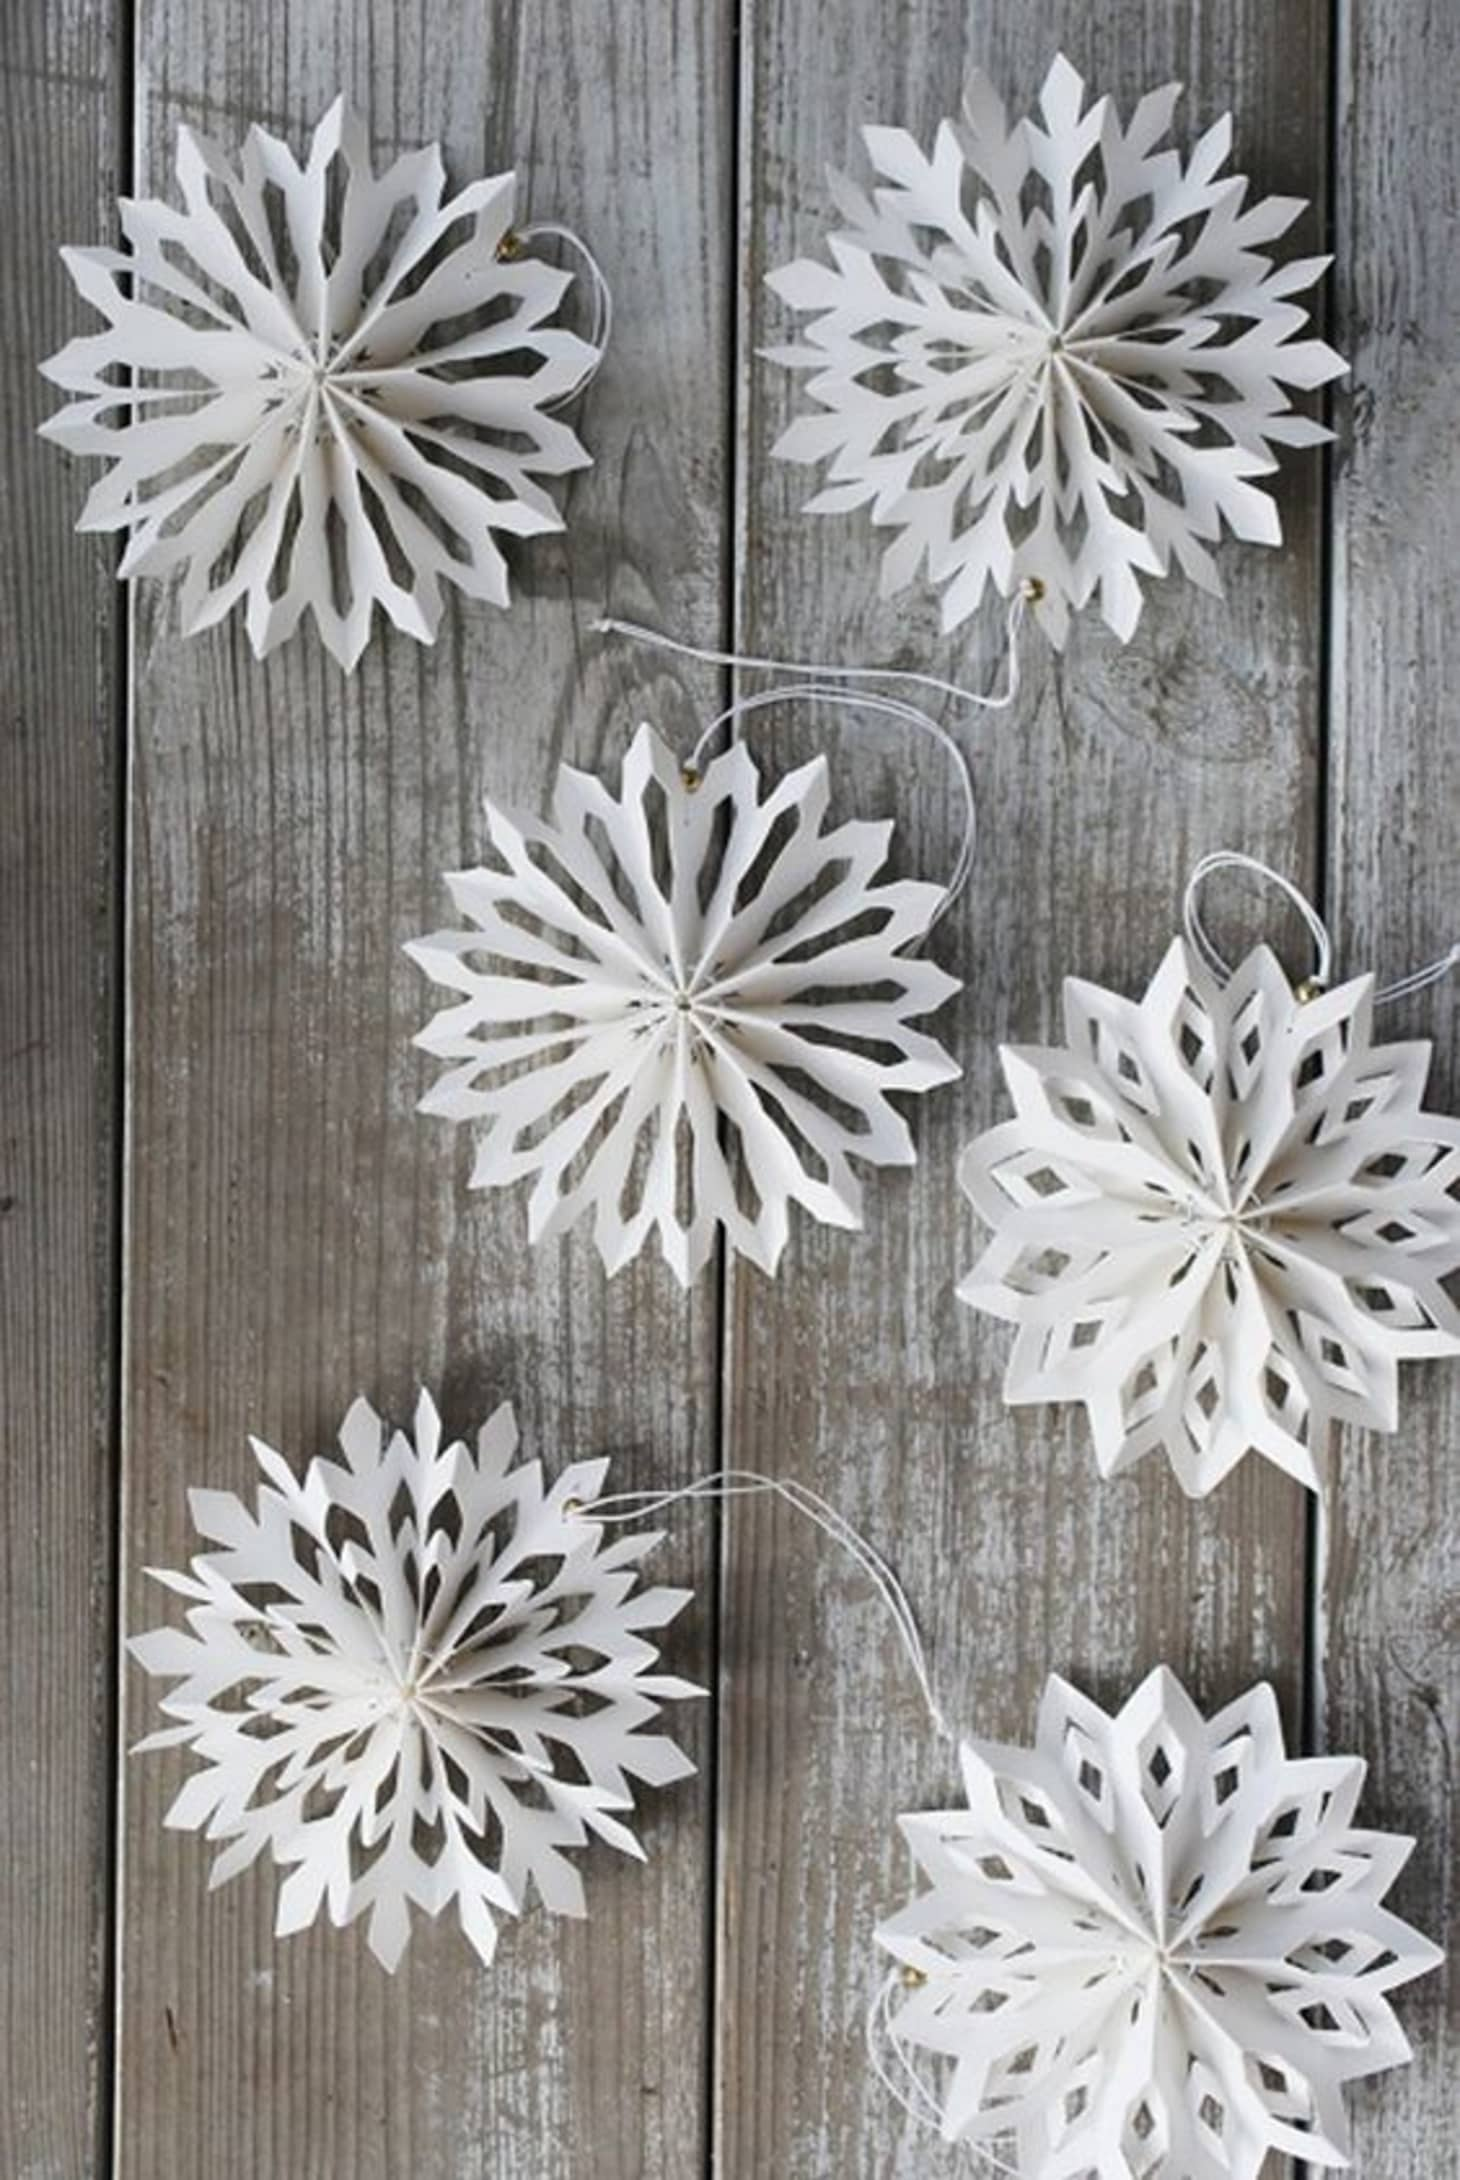 Paper Snowflake Patterns And Next Level Projects Apartment Therapy